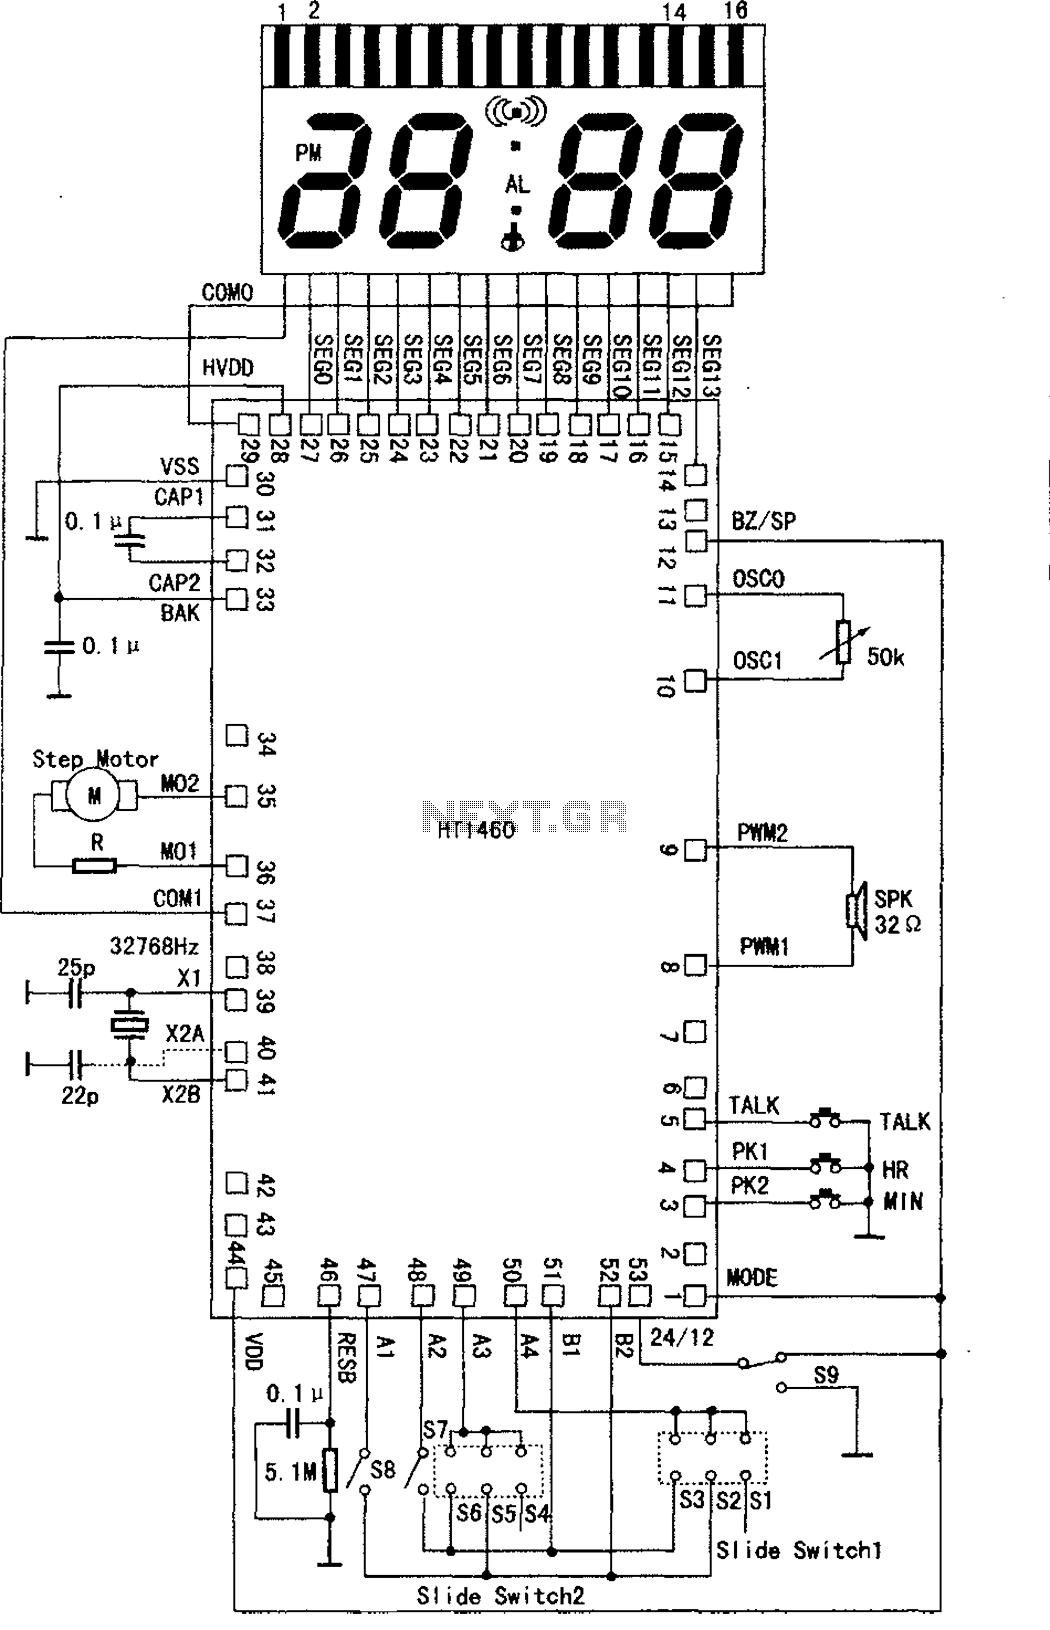 LCD series microprocessor circuit diagram of speech synthesis - schematic